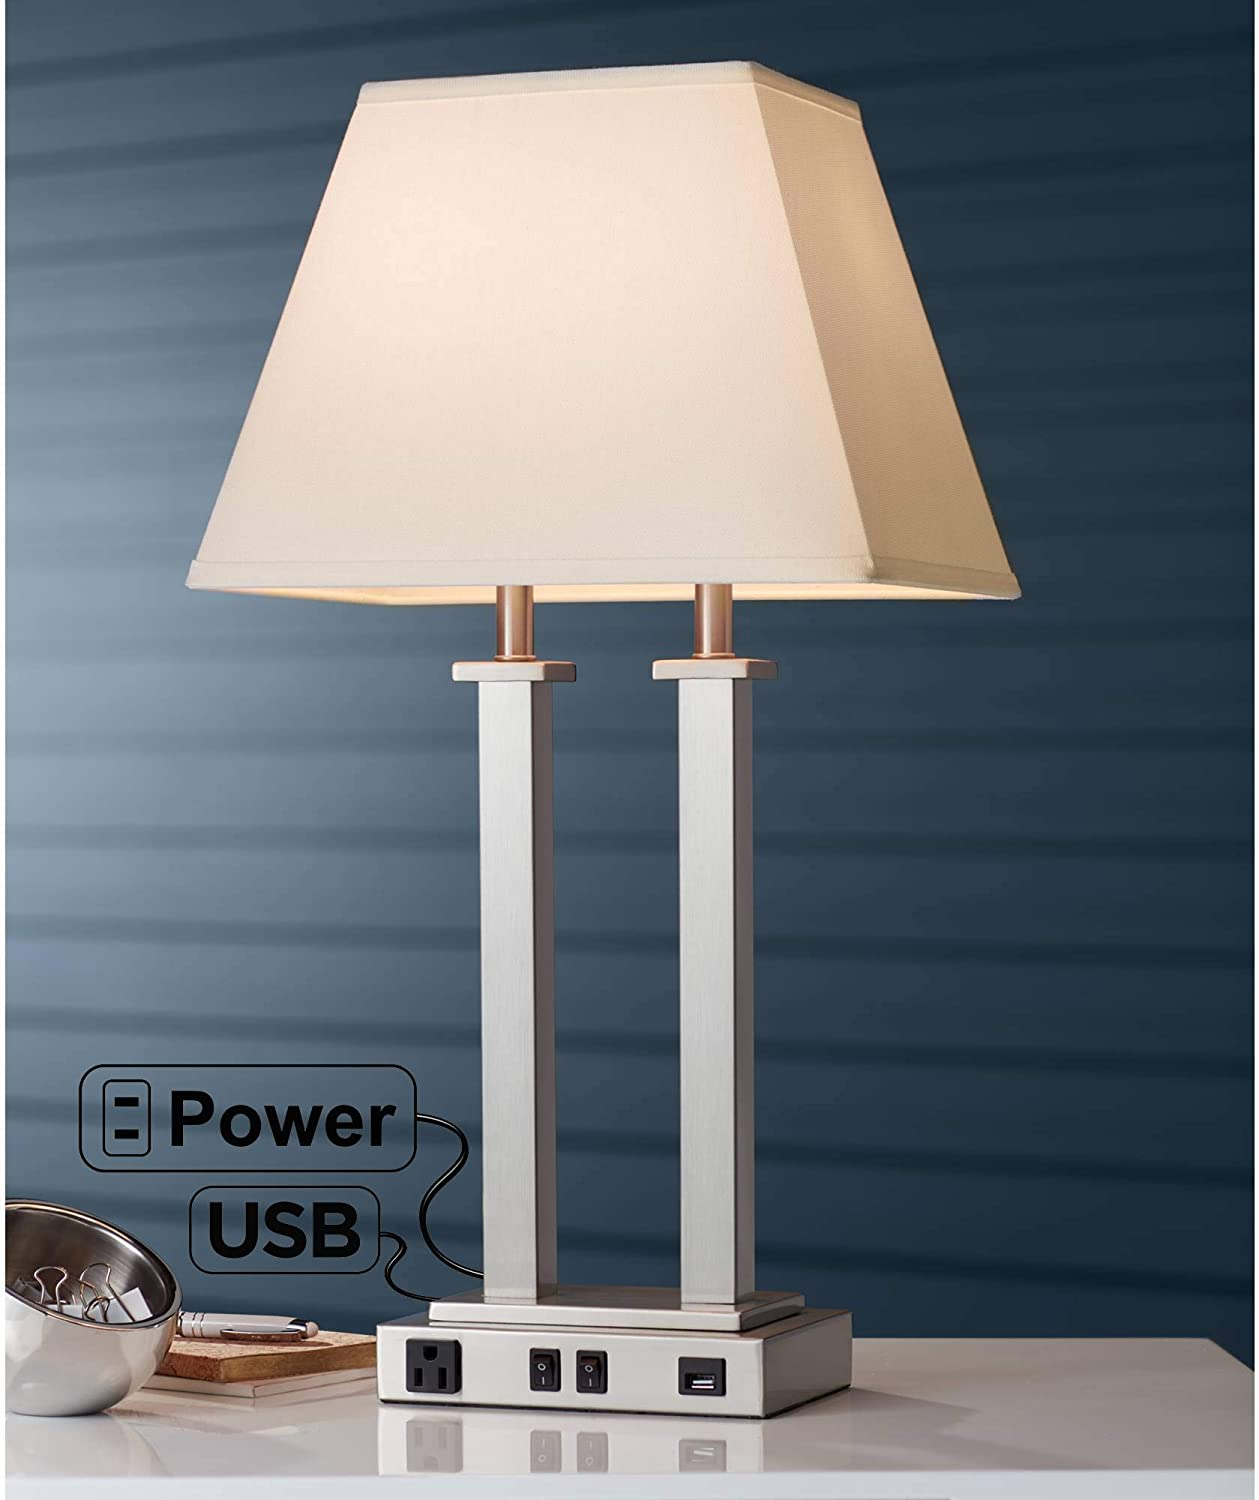 Amity Max 50% OFF Modern Contemporary Table Lamp Super special price with Style Hotel O AC USB